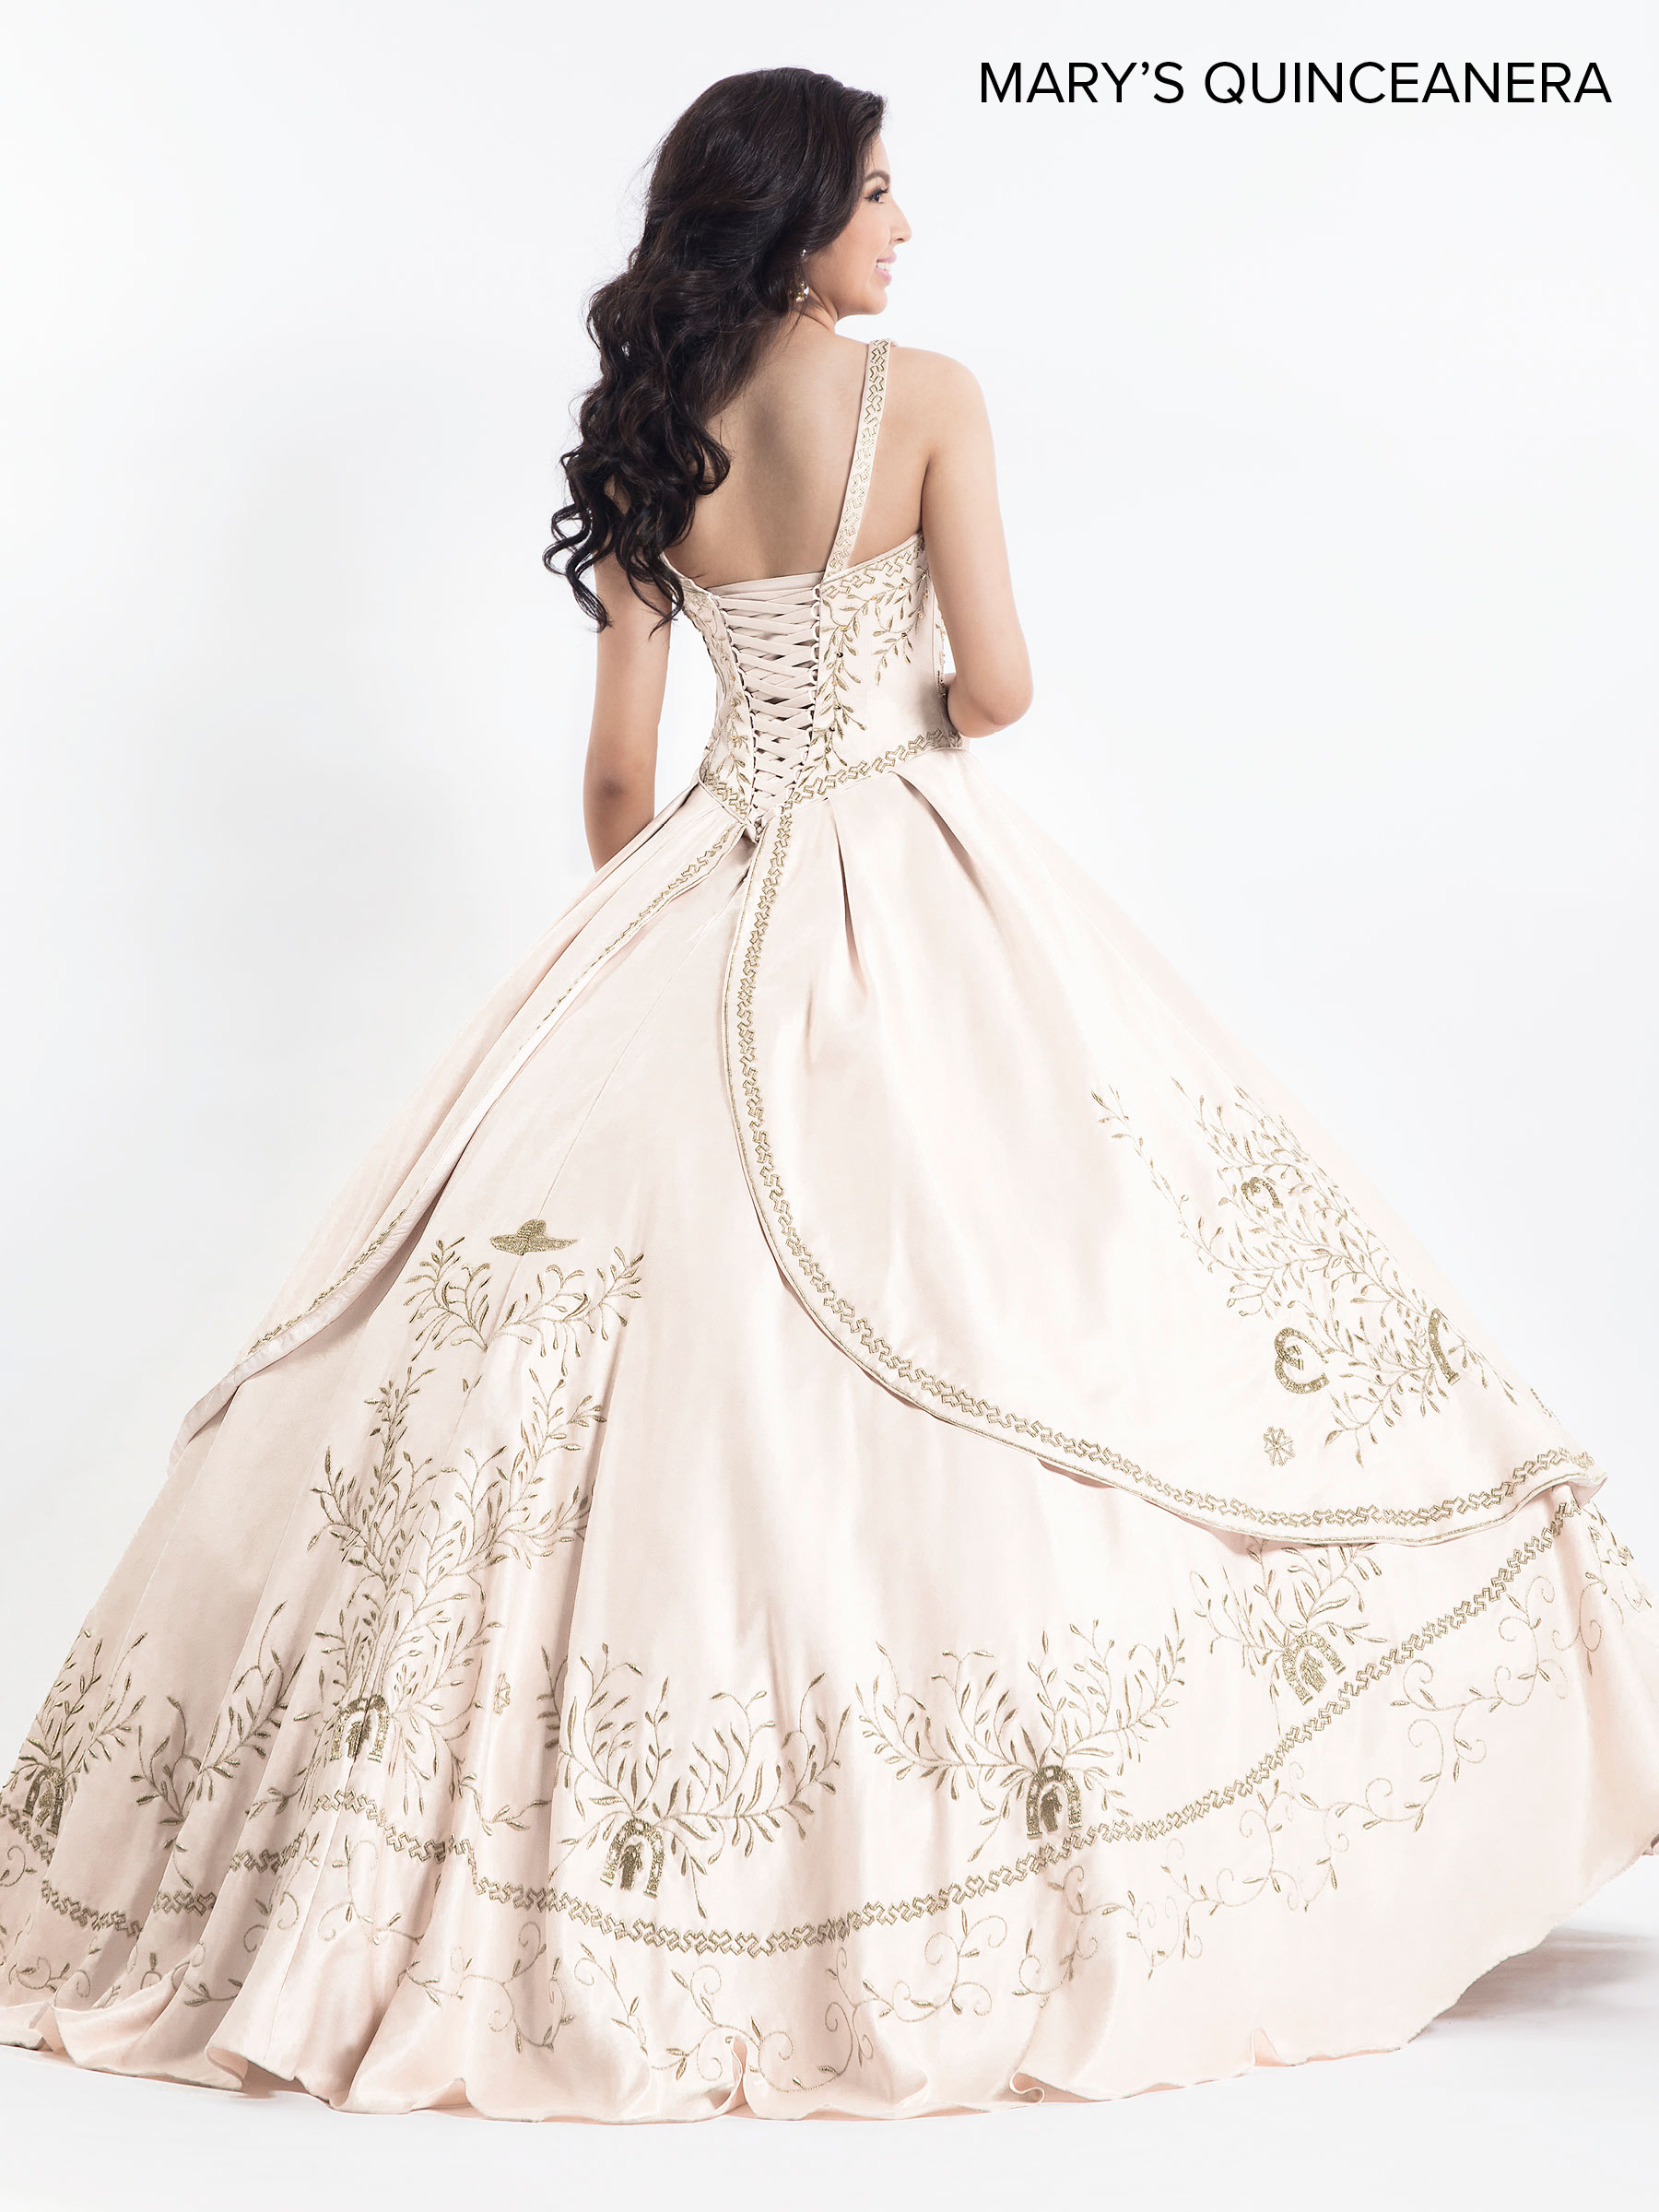 Marys Quinceanera Dresses | Mary's Quinceanera | Style - MQ2022